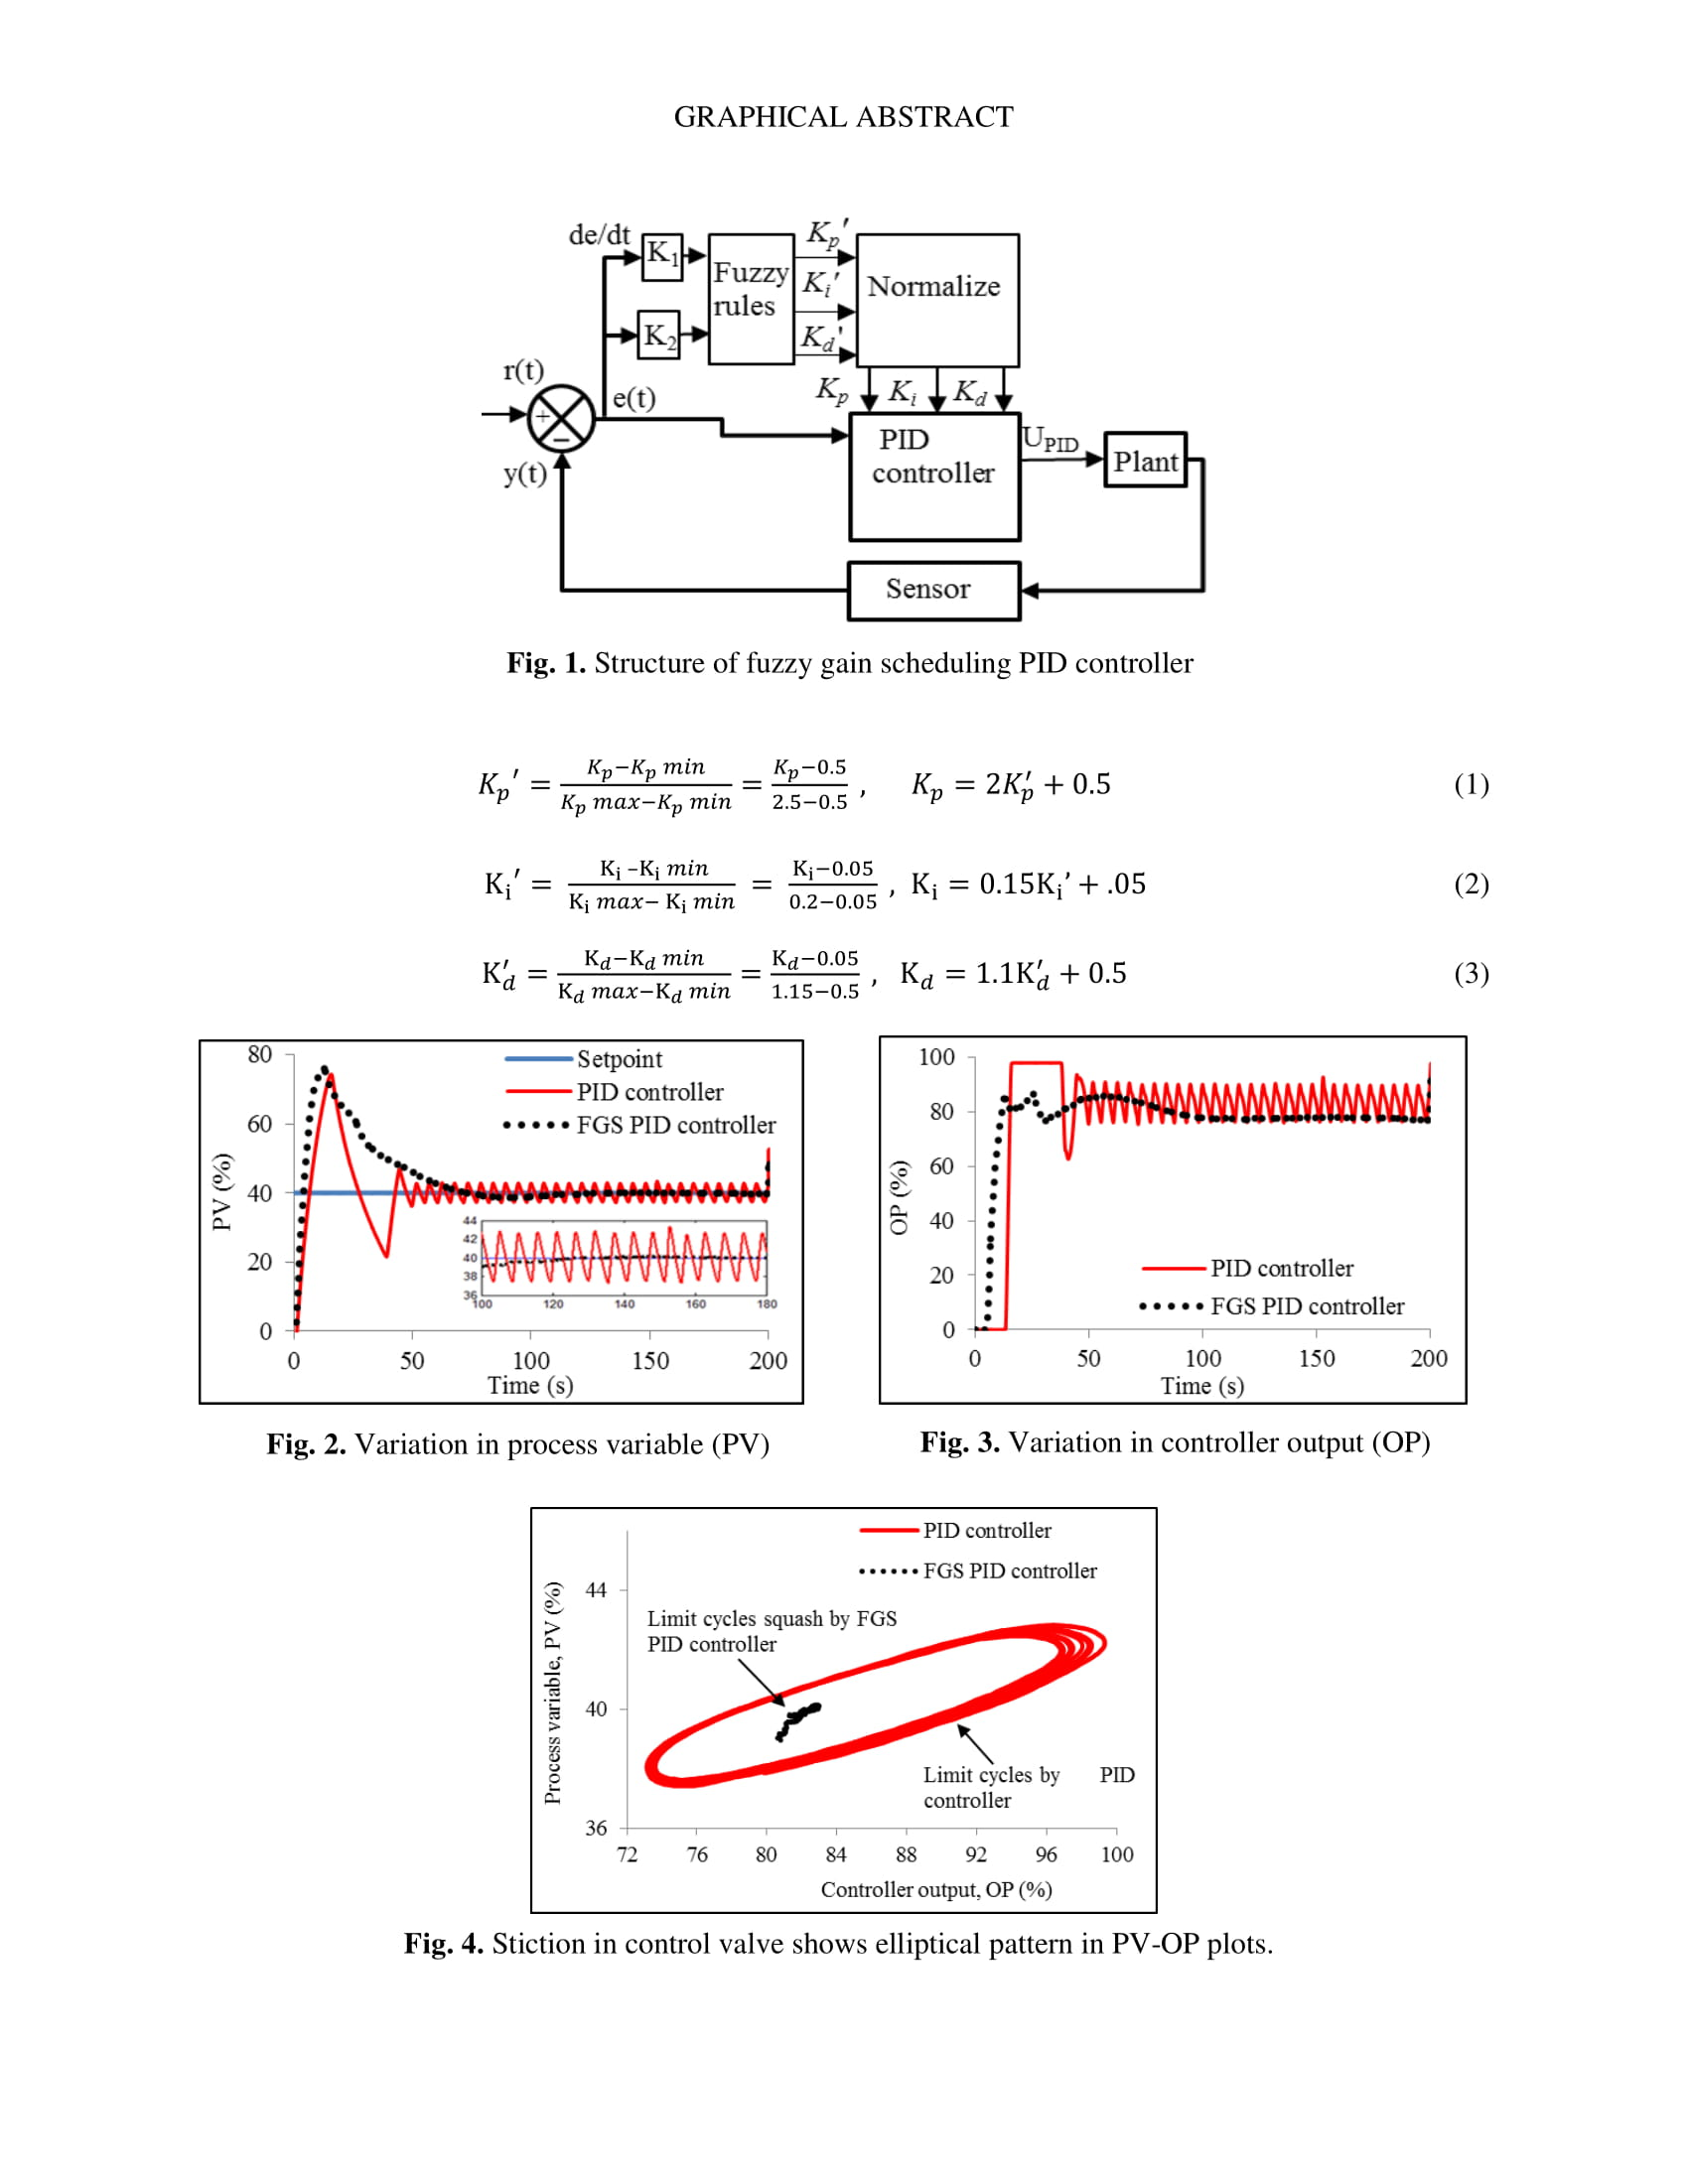 hight resolution of fuzzy gain scheduling of pid controller for stiction compensation in pneumatic control valve